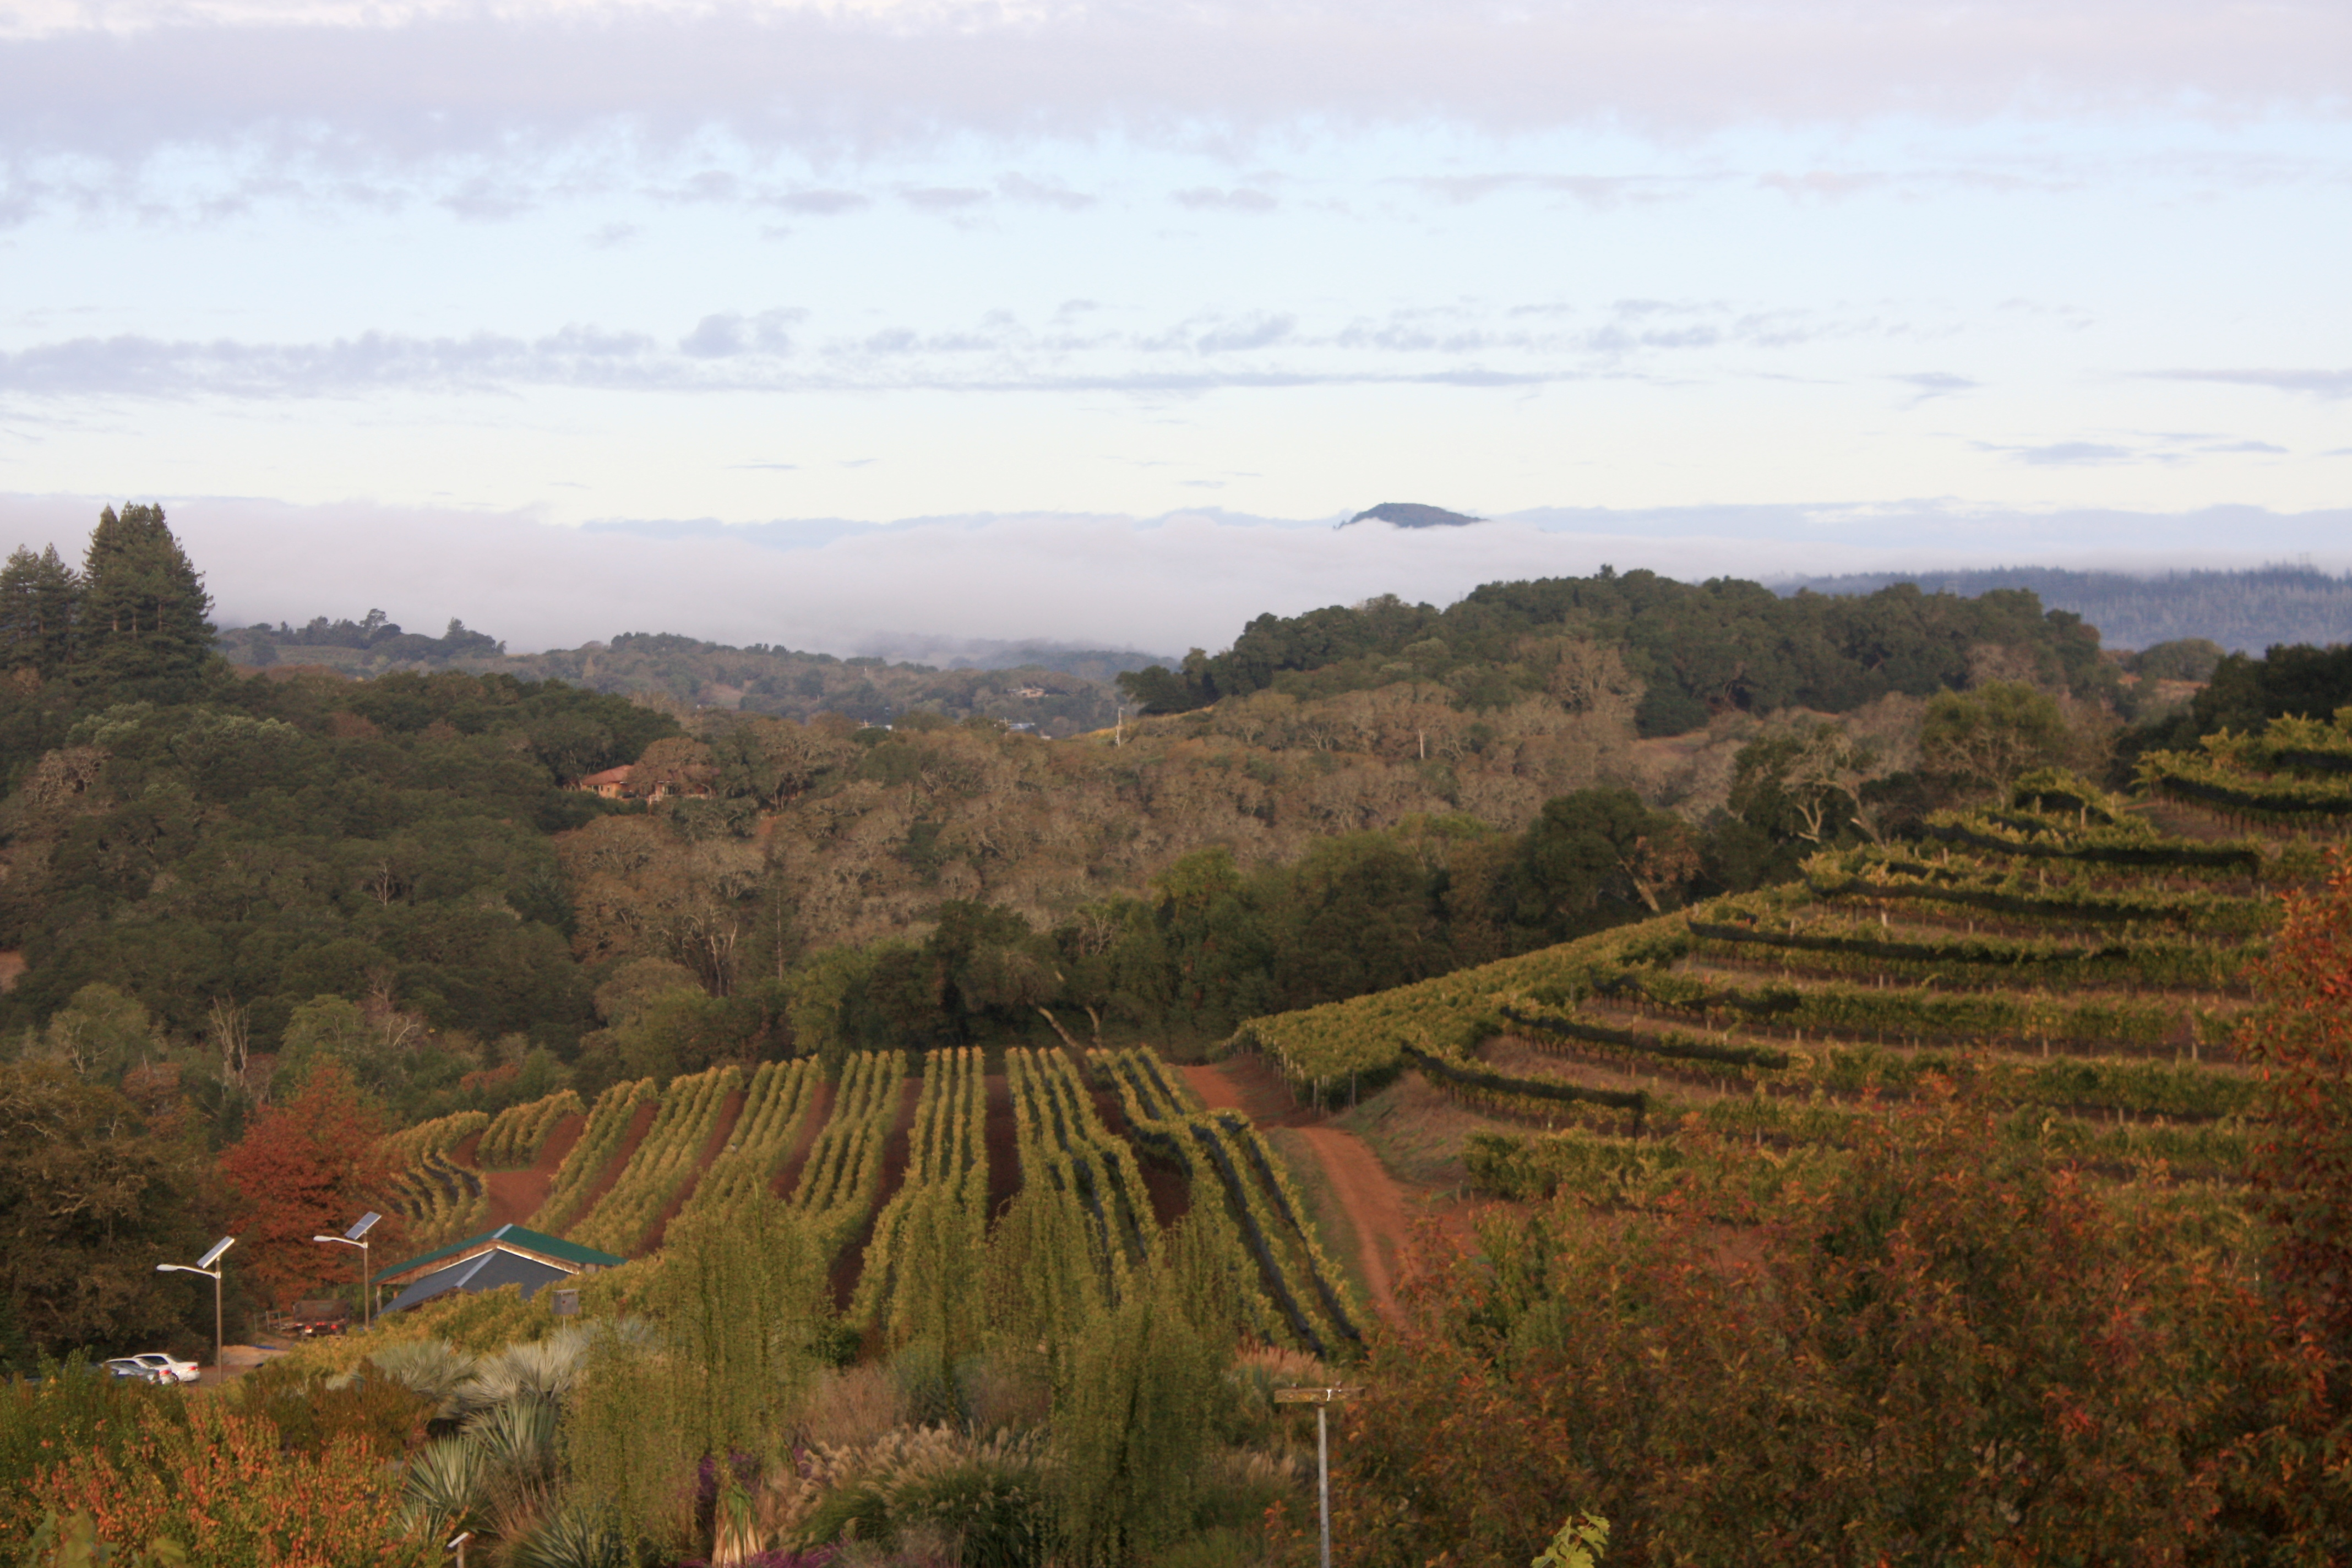 A View of the Benziger Family Winery Property